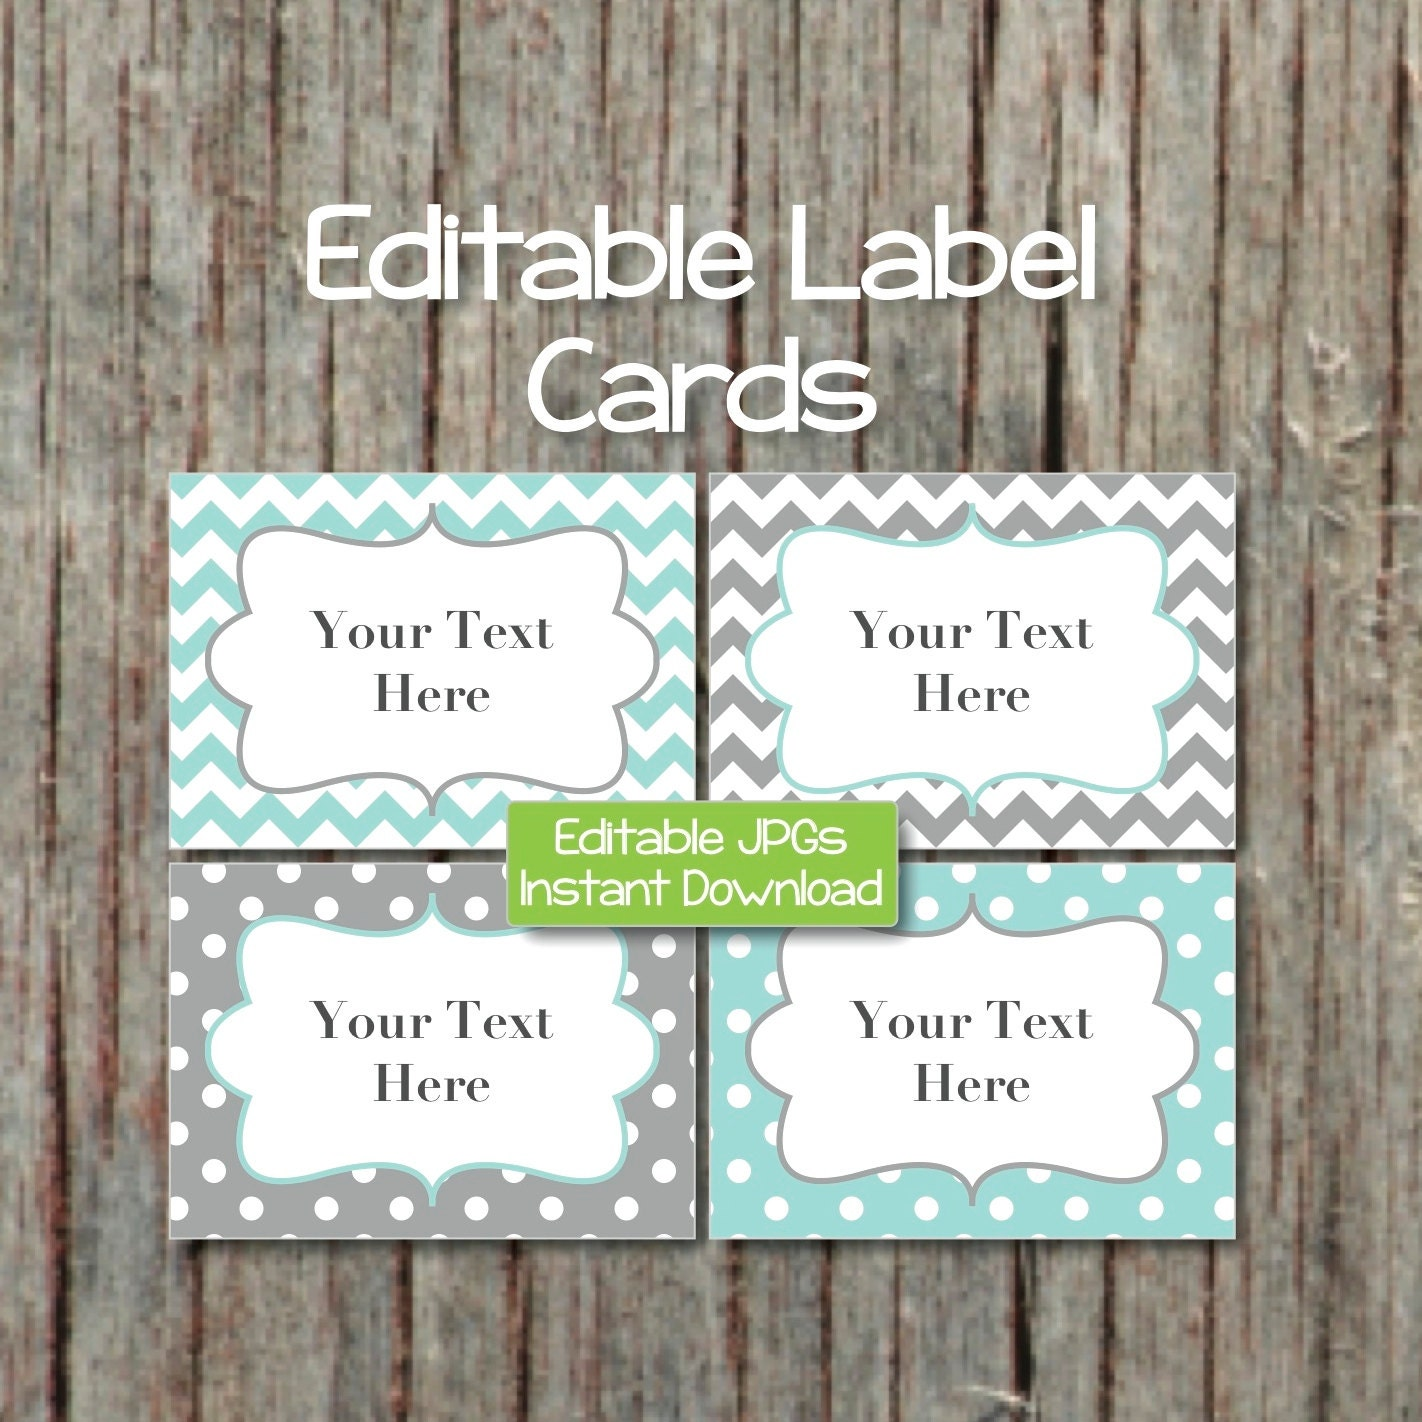 name tags editable labels cards jpg file printable baby shower